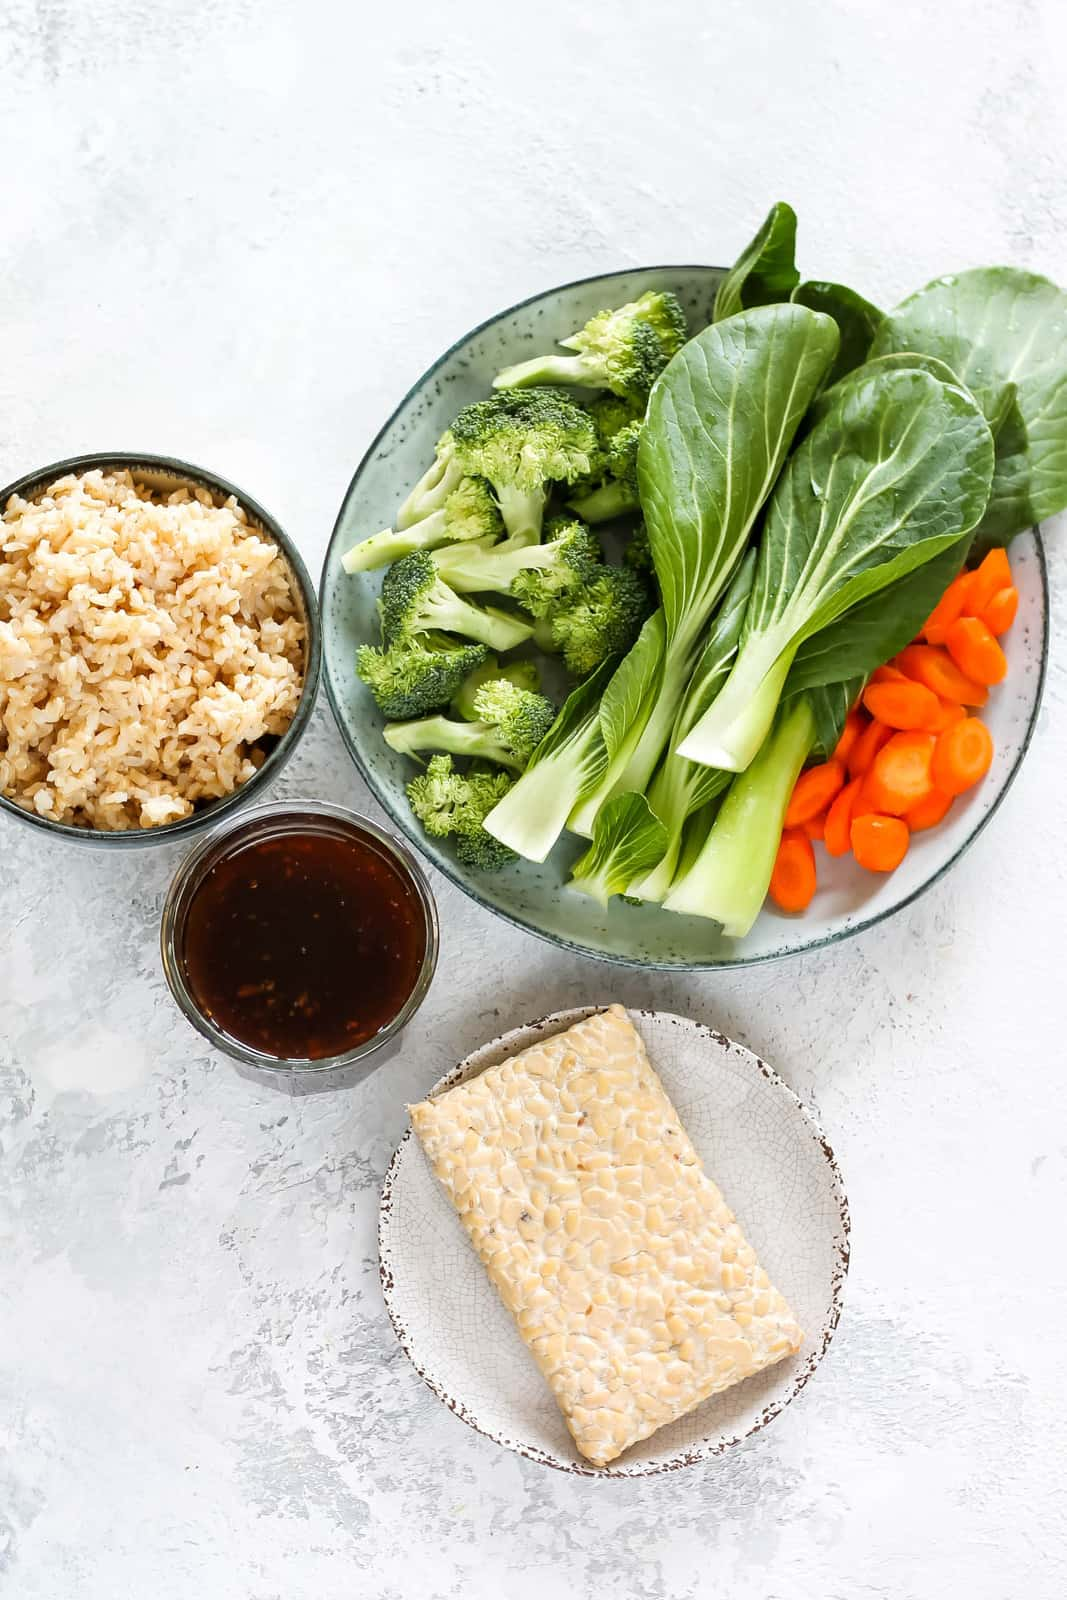 tempeh, teriyaki sauce, brown rice, and a plate of mixed vegetables on a grey background